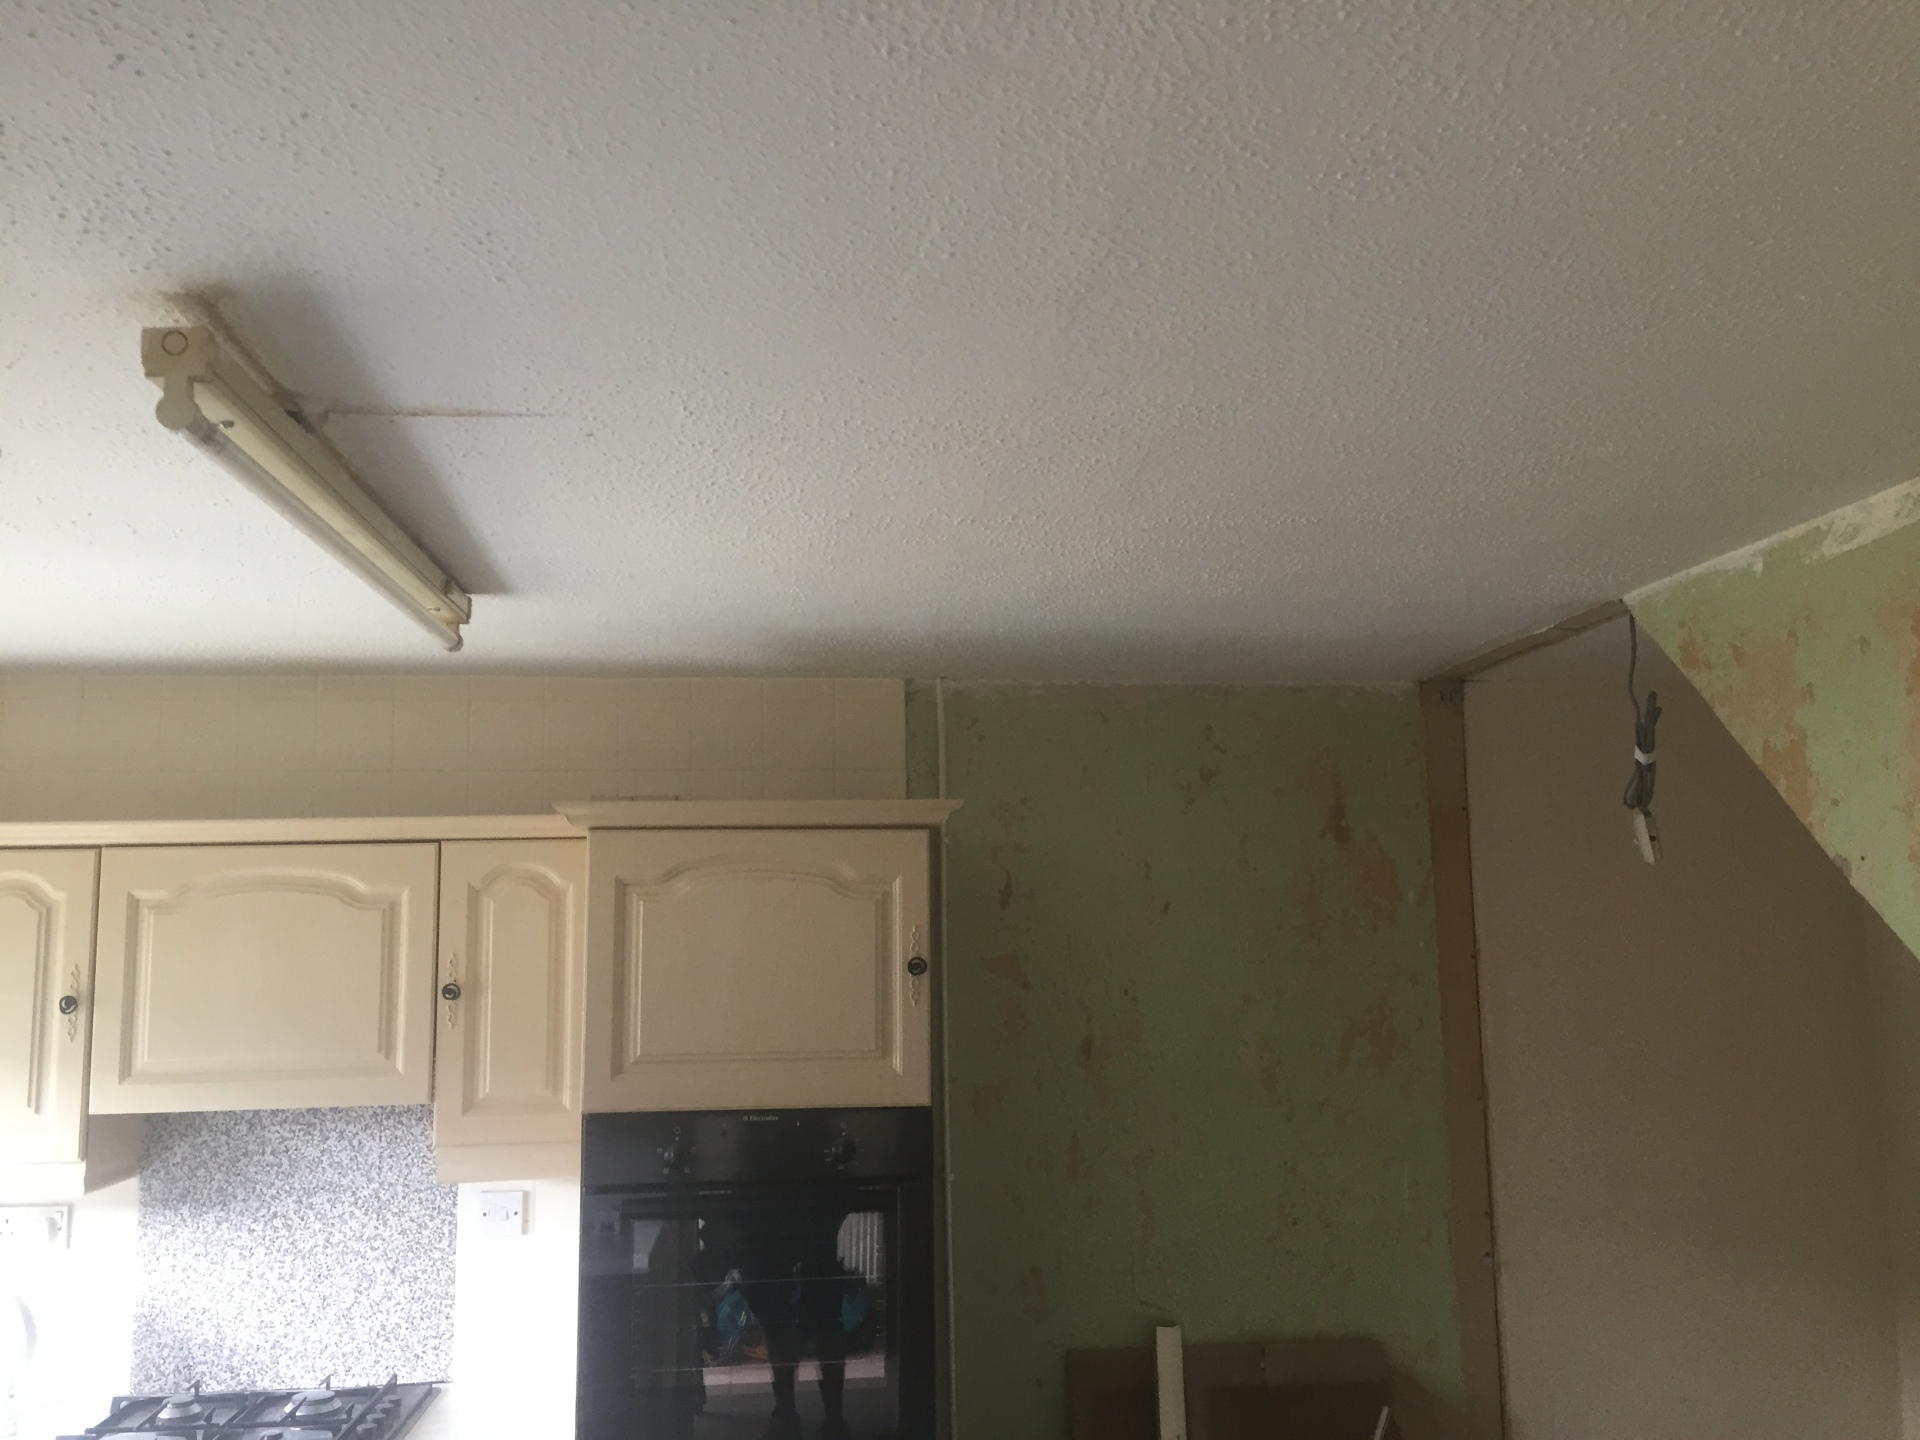 Before - Fluorescent light fitting in a kitchen